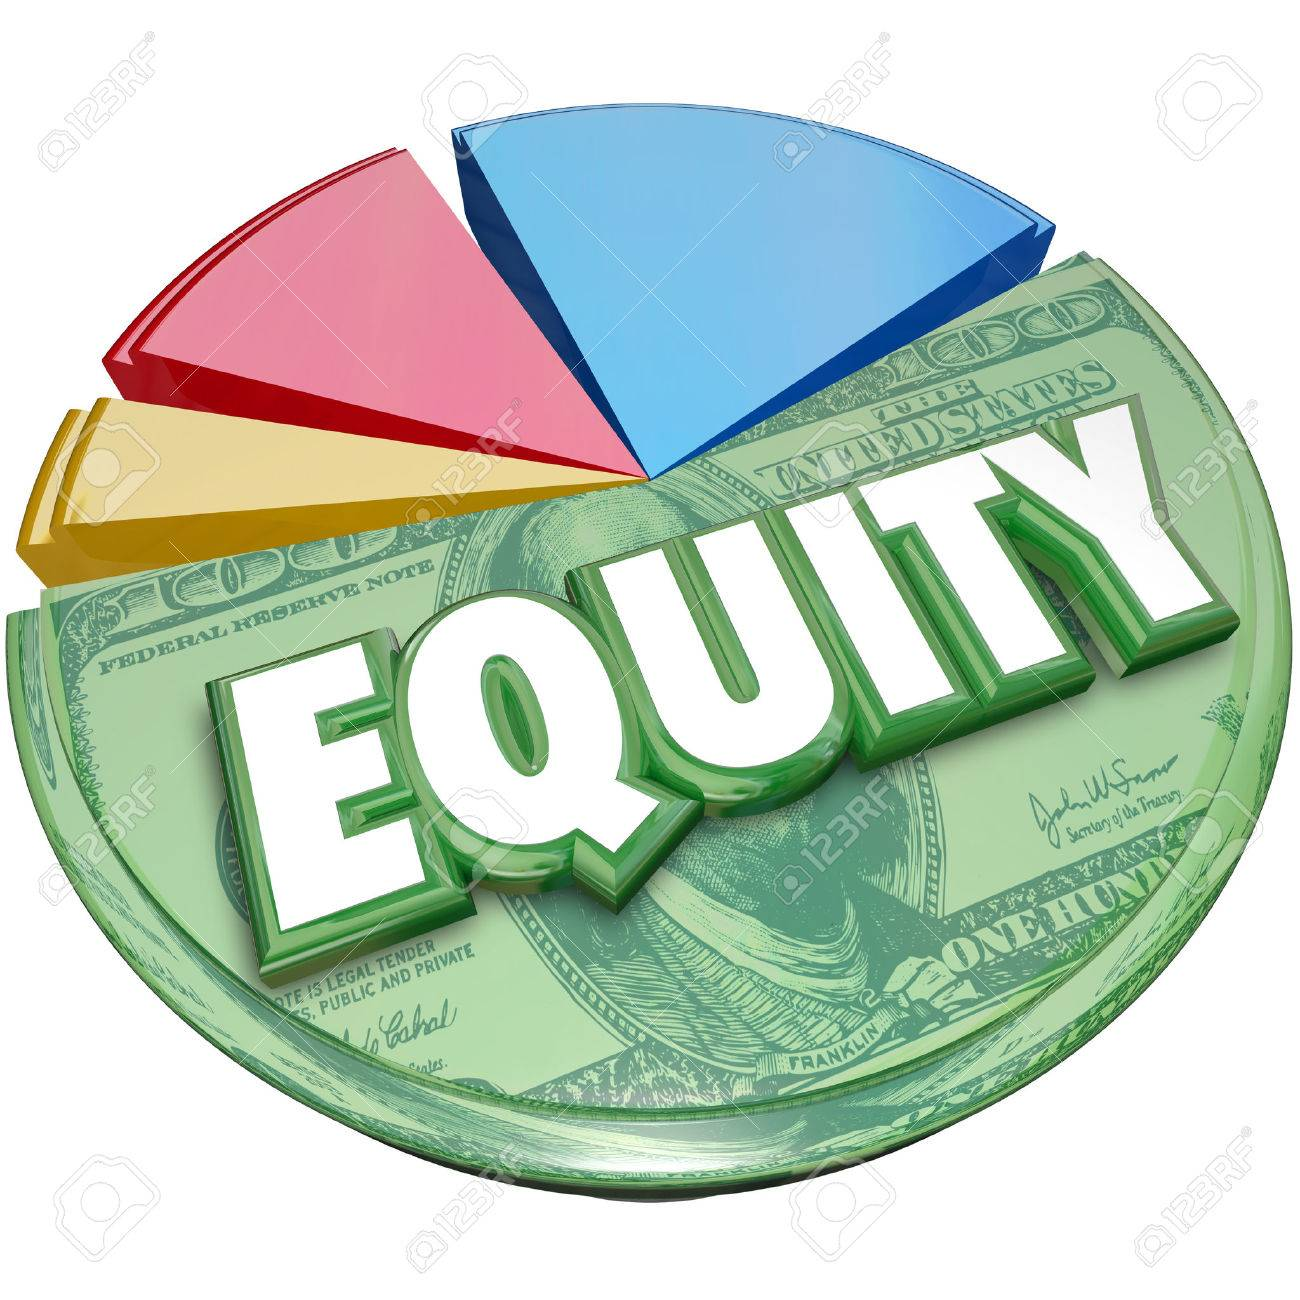 Equity word on a pie chart to illustrate stock balance investment equity word on a pie chart to illustrate stock balance investment account for amount owed or nvjuhfo Choice Image